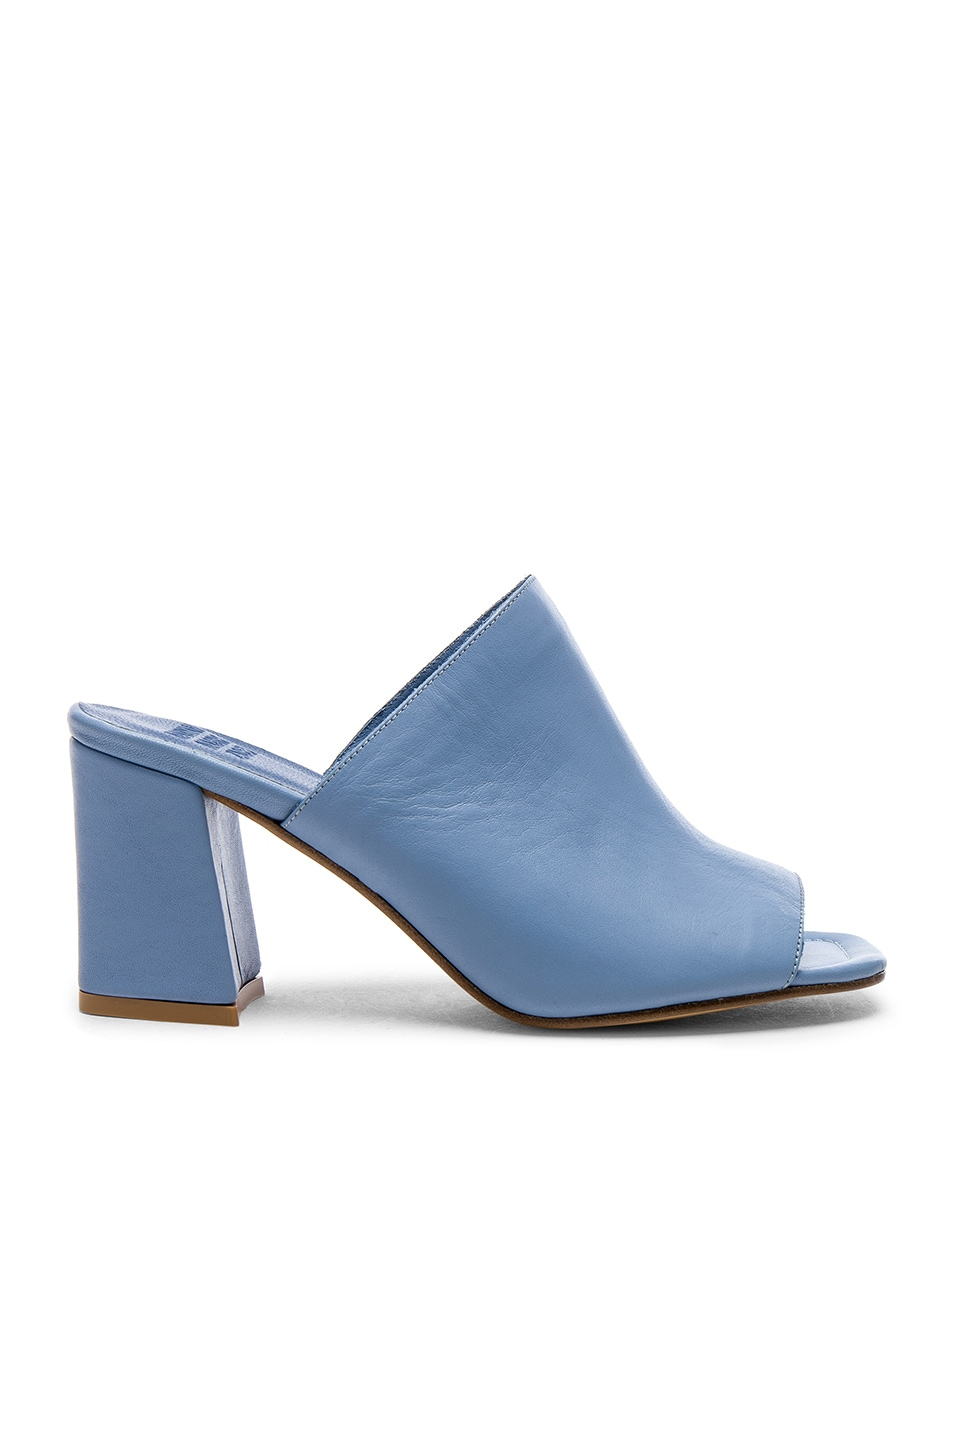 Image 1 of Maryam Nassir Zadeh for FWRD Penelope Mule in Slate Blue